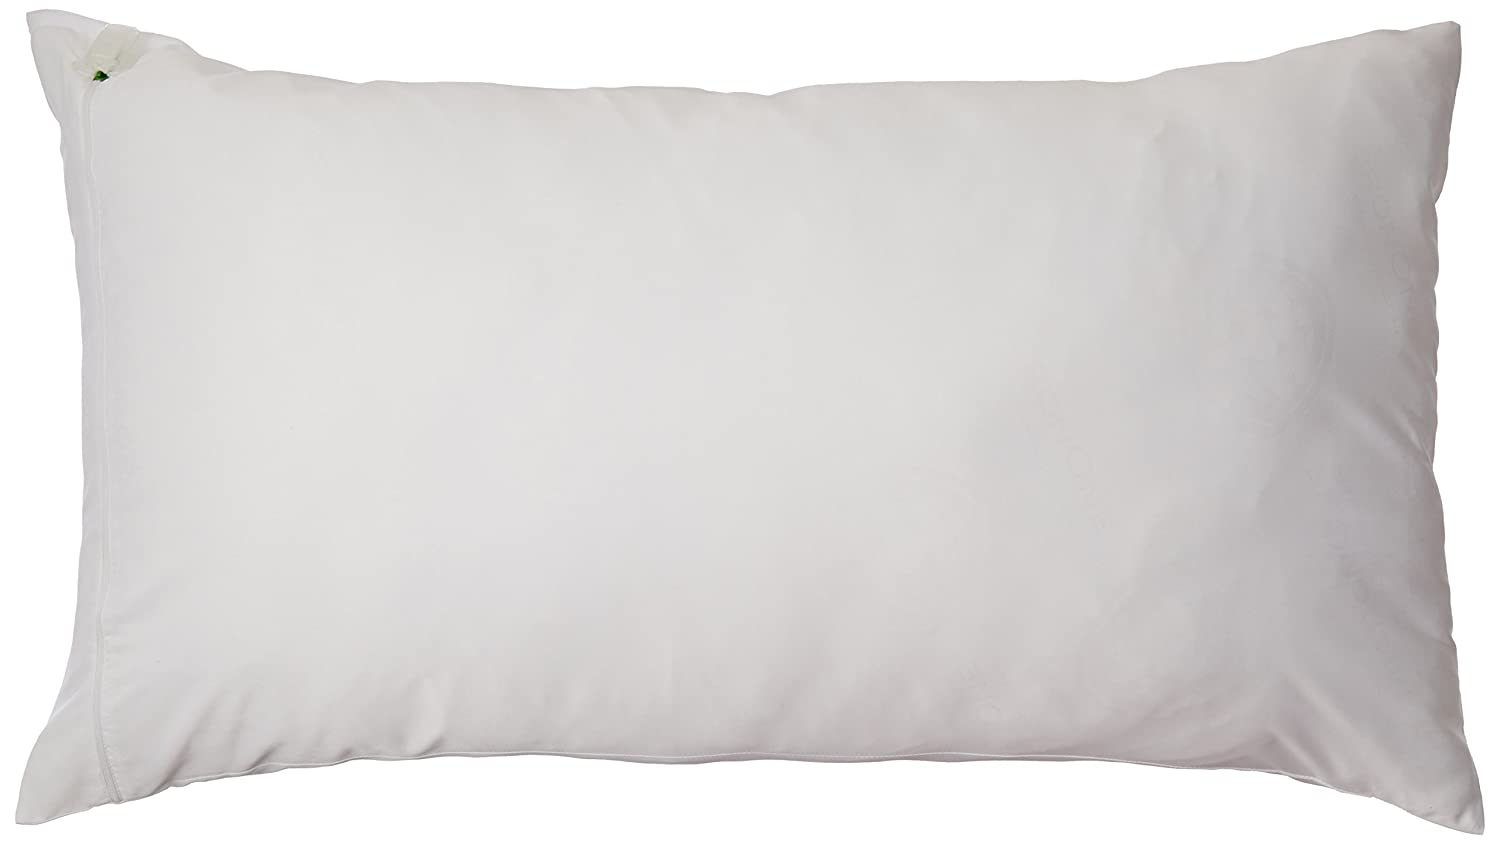 Clean Rest Pro Waterproof, Allergy and Bed Bug Blocking Pillow Encasement, King Clean Brands 845168001786